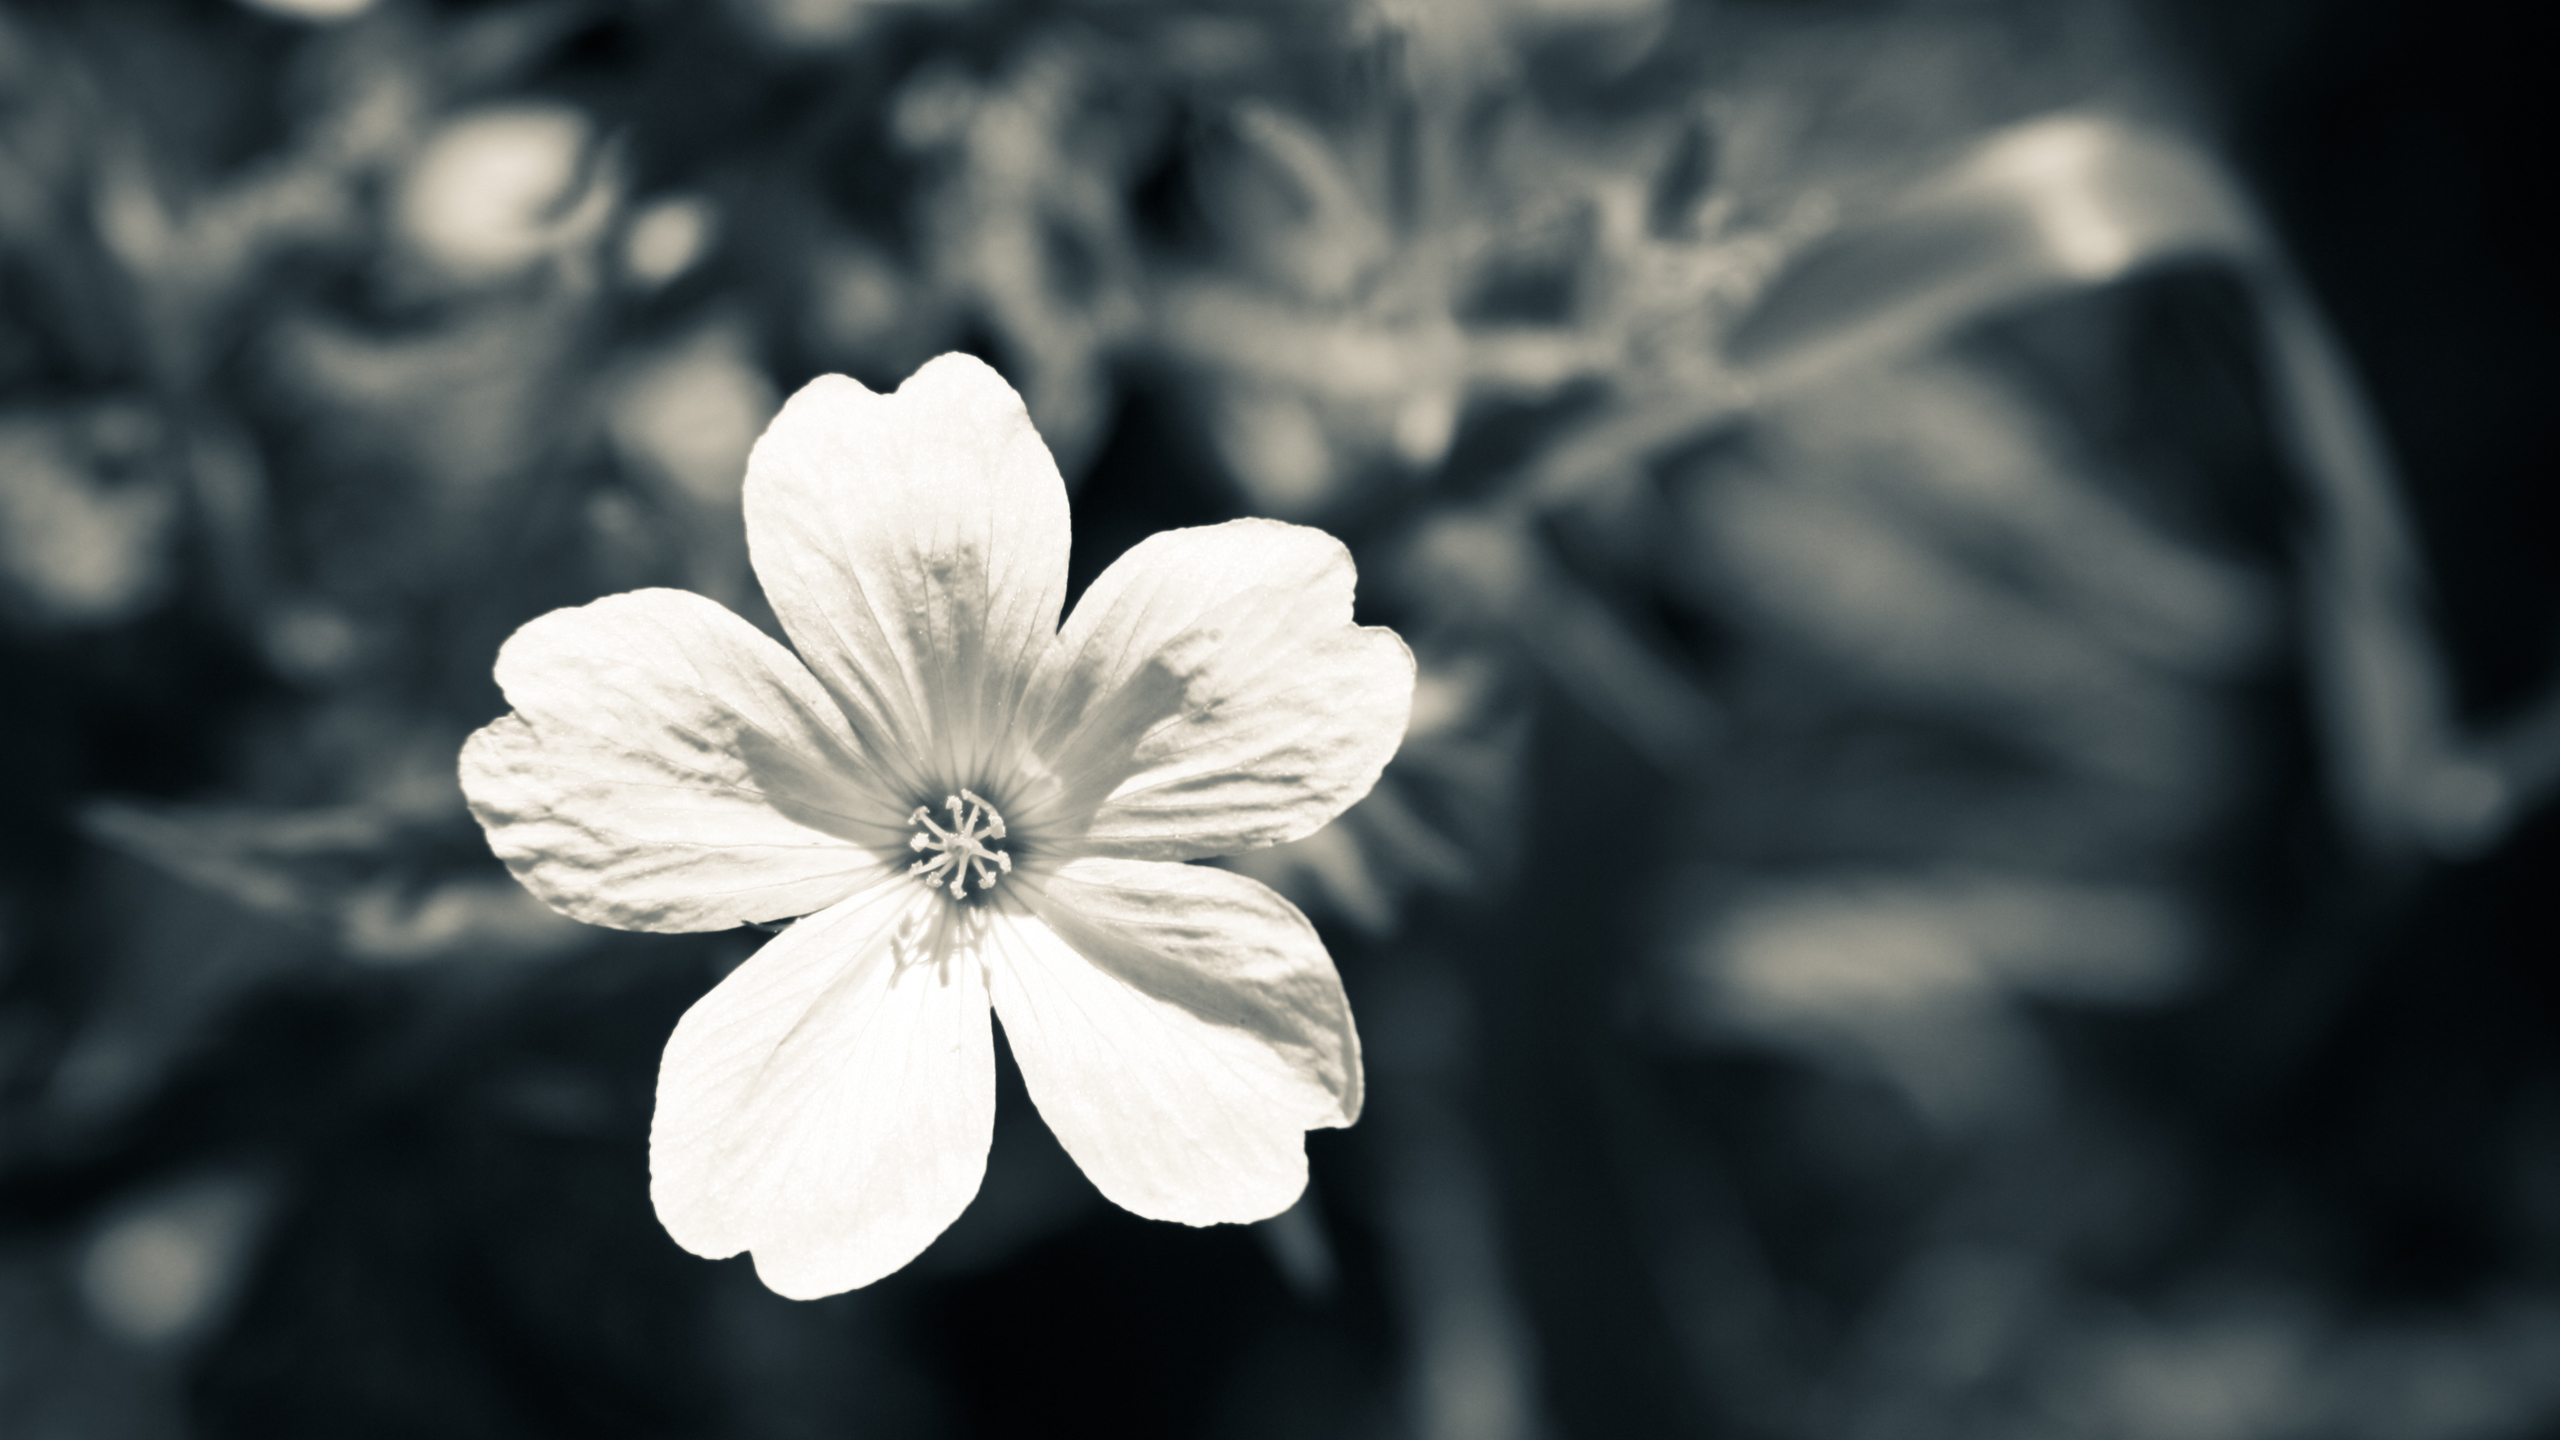 Black And White Flower Wallpaper 2 Background Hdflowerwallpaper